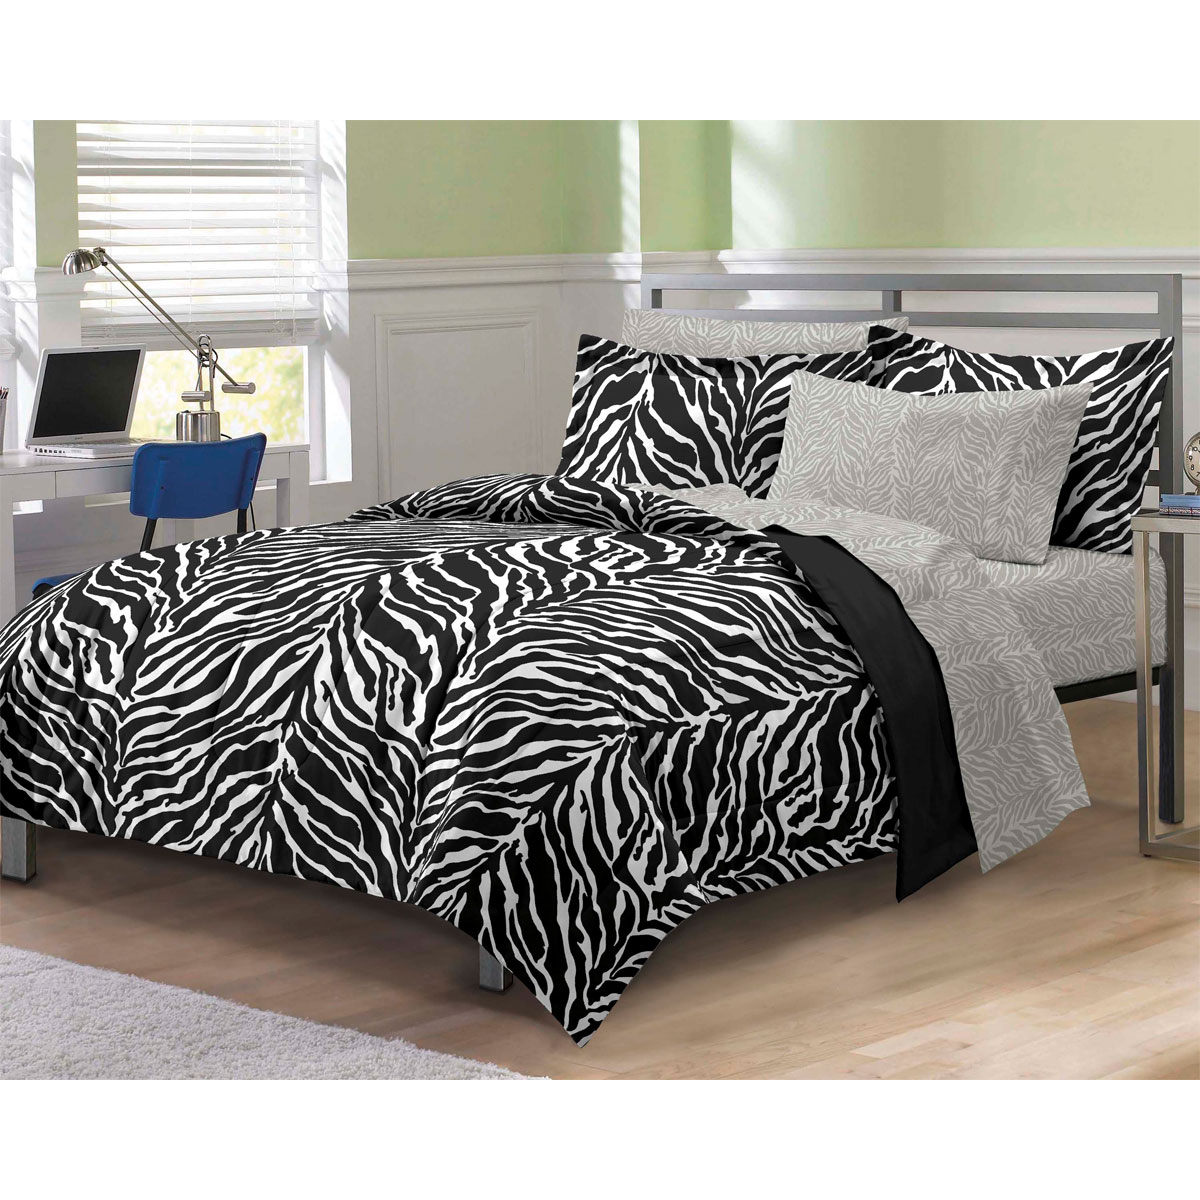 Zebra Print Bedding Set Animal Stripes Comforter And Sheets